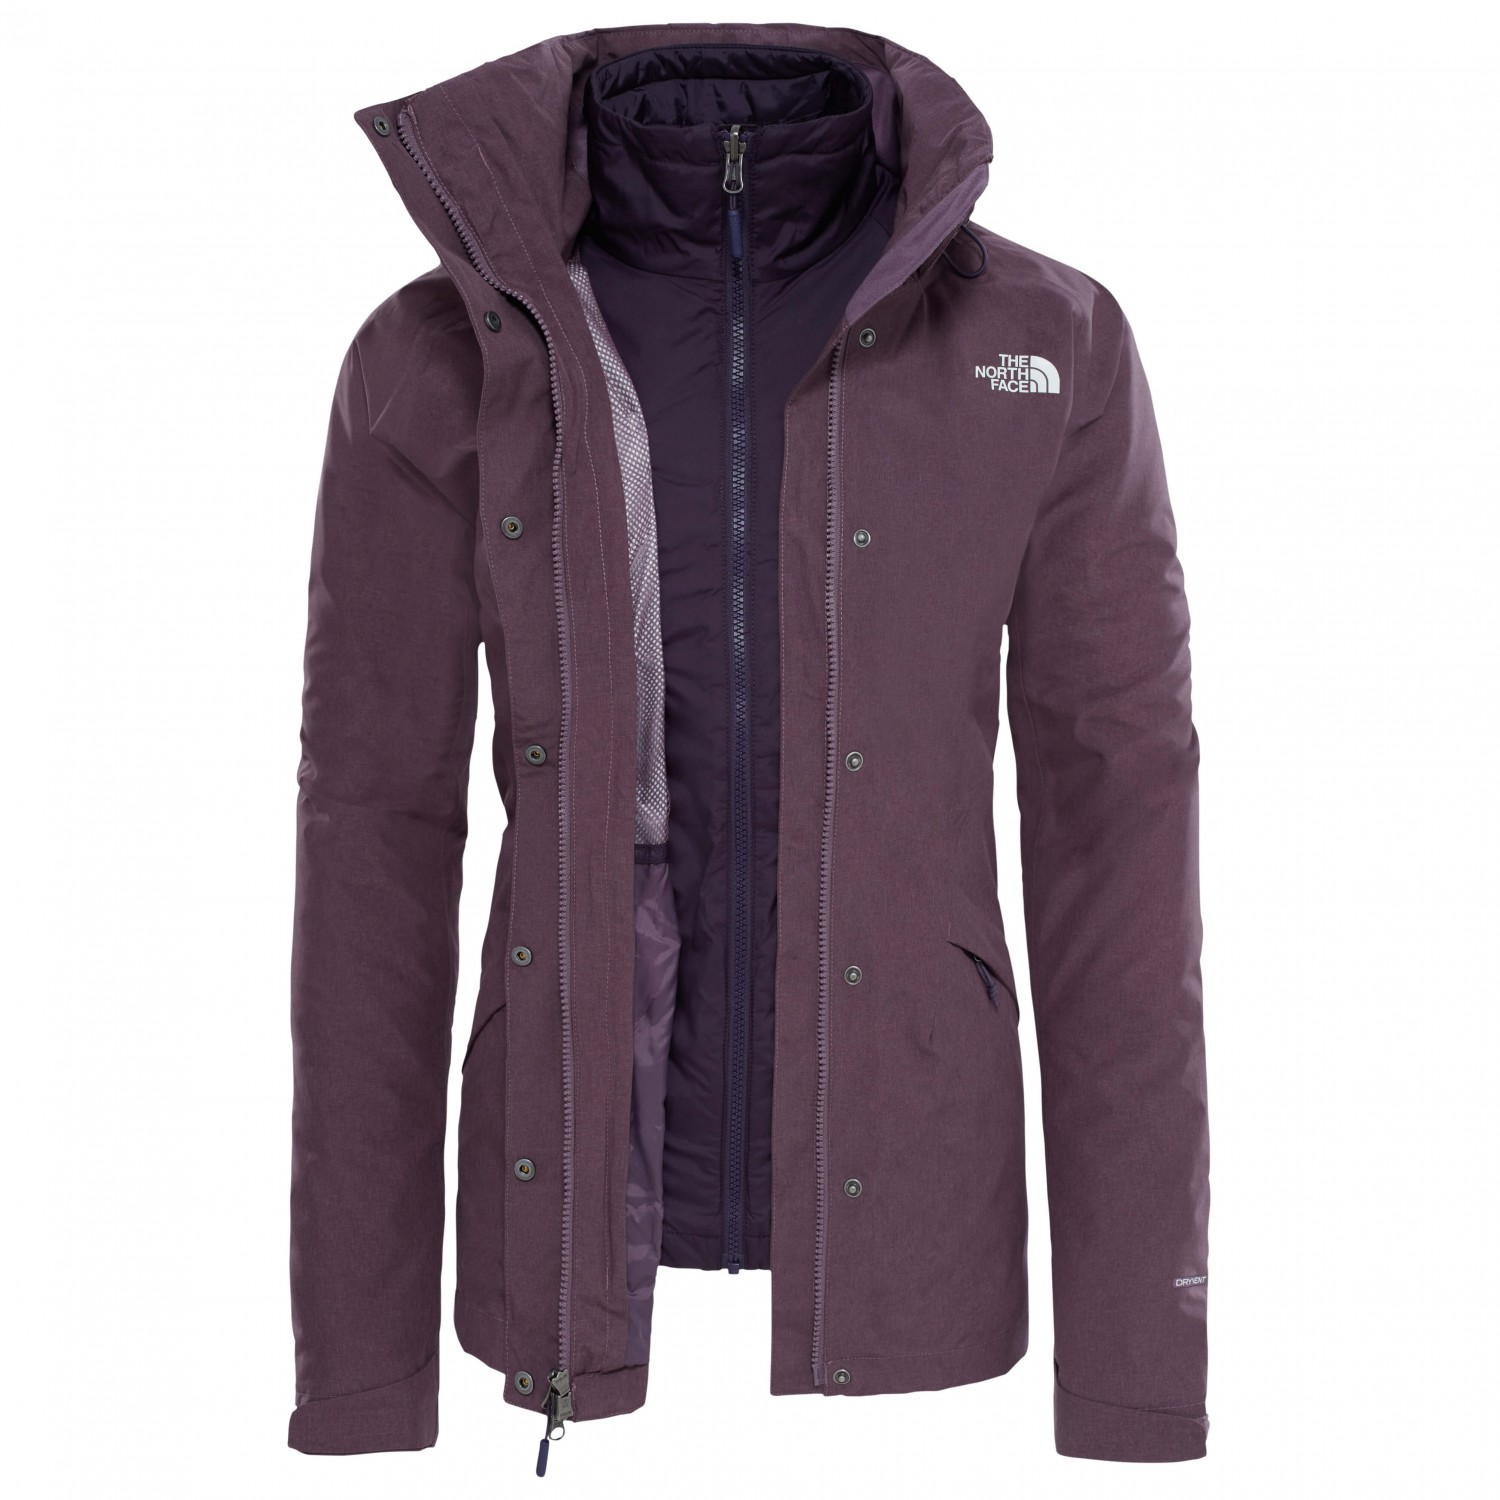 f855a06d8 The North Face Naslund Triclimate Jacket - 3-in-1 jacket Women's ...